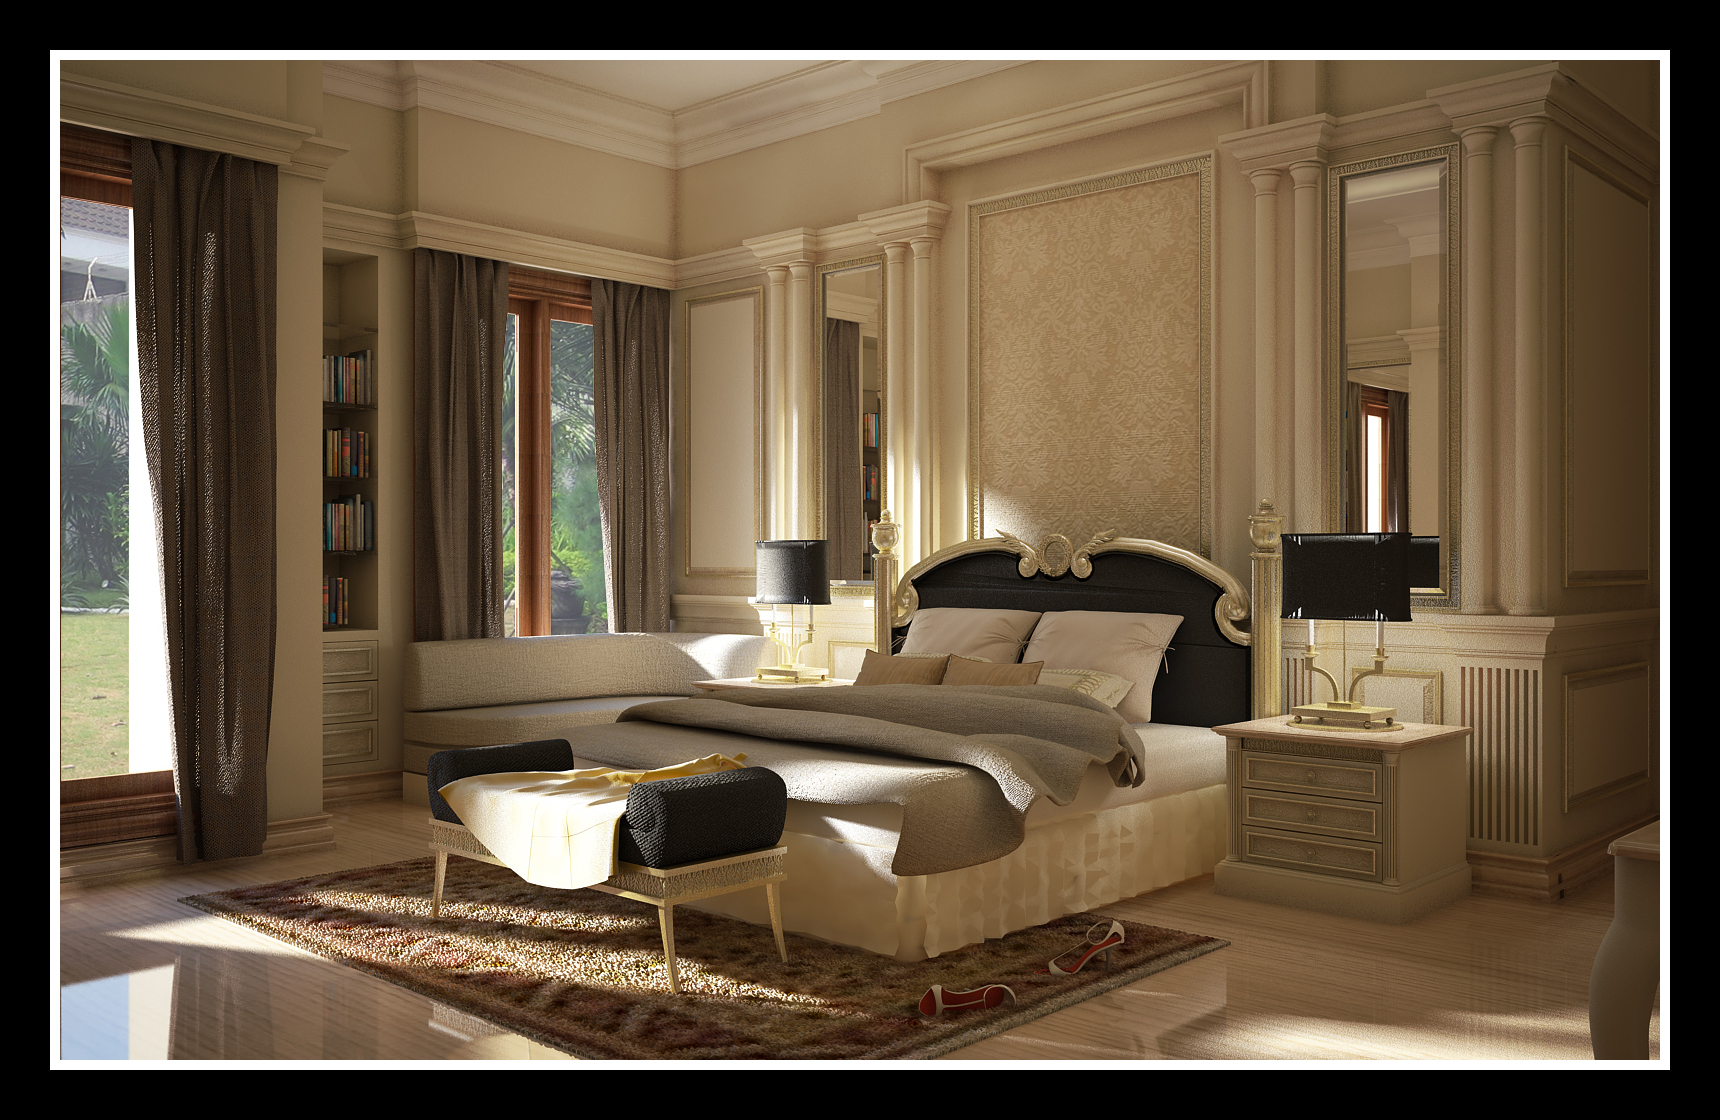 Interior design 3d home designer for Bed interior design picture